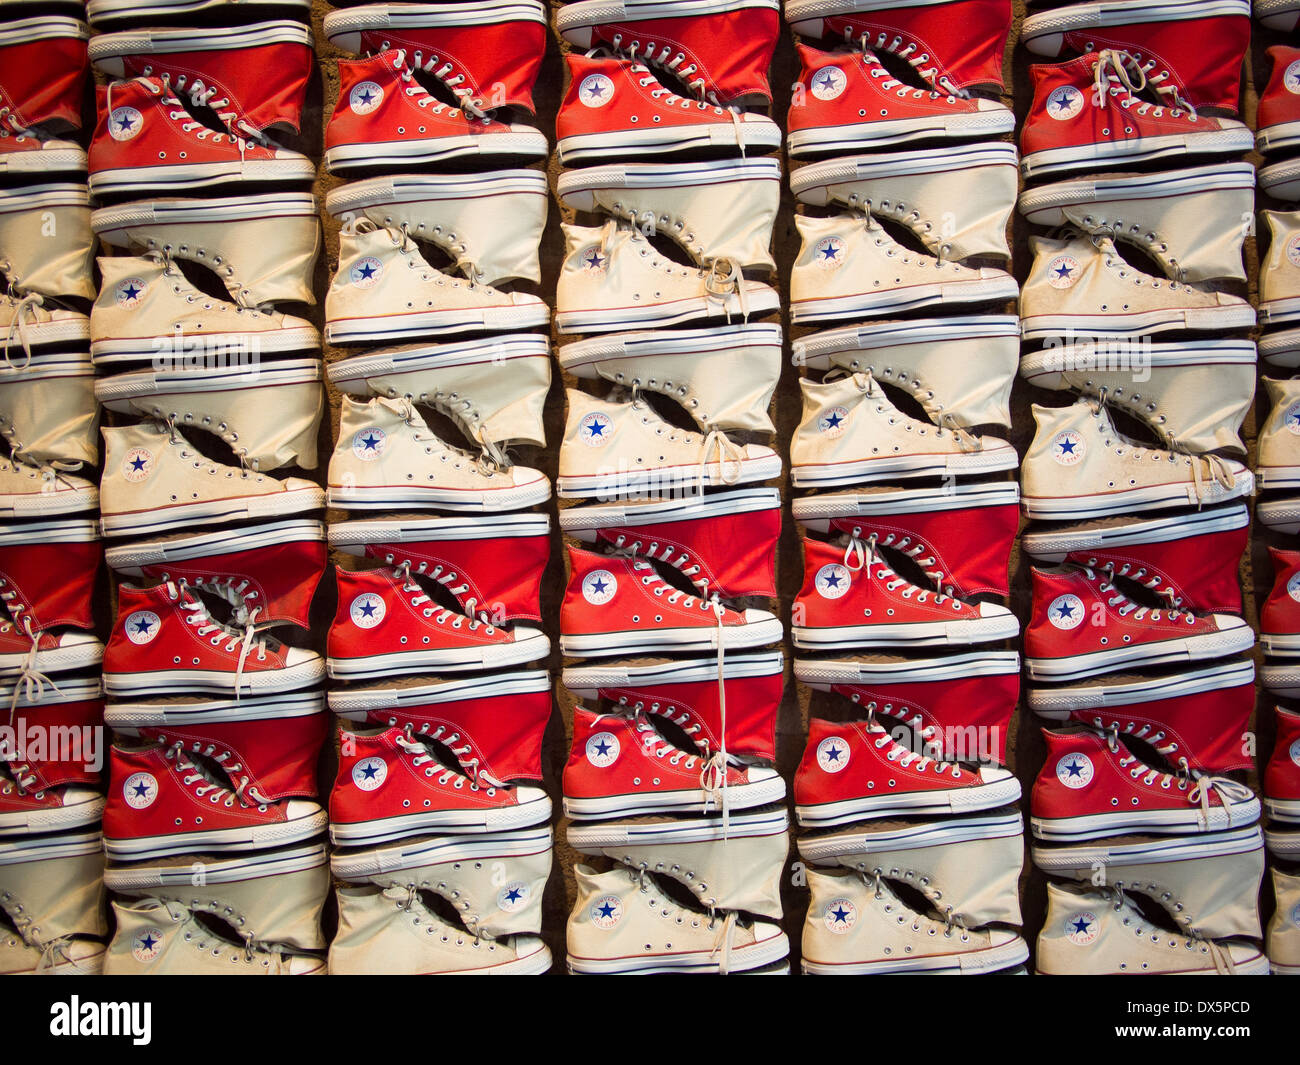 Converse All Star Display, New York - Stock Image